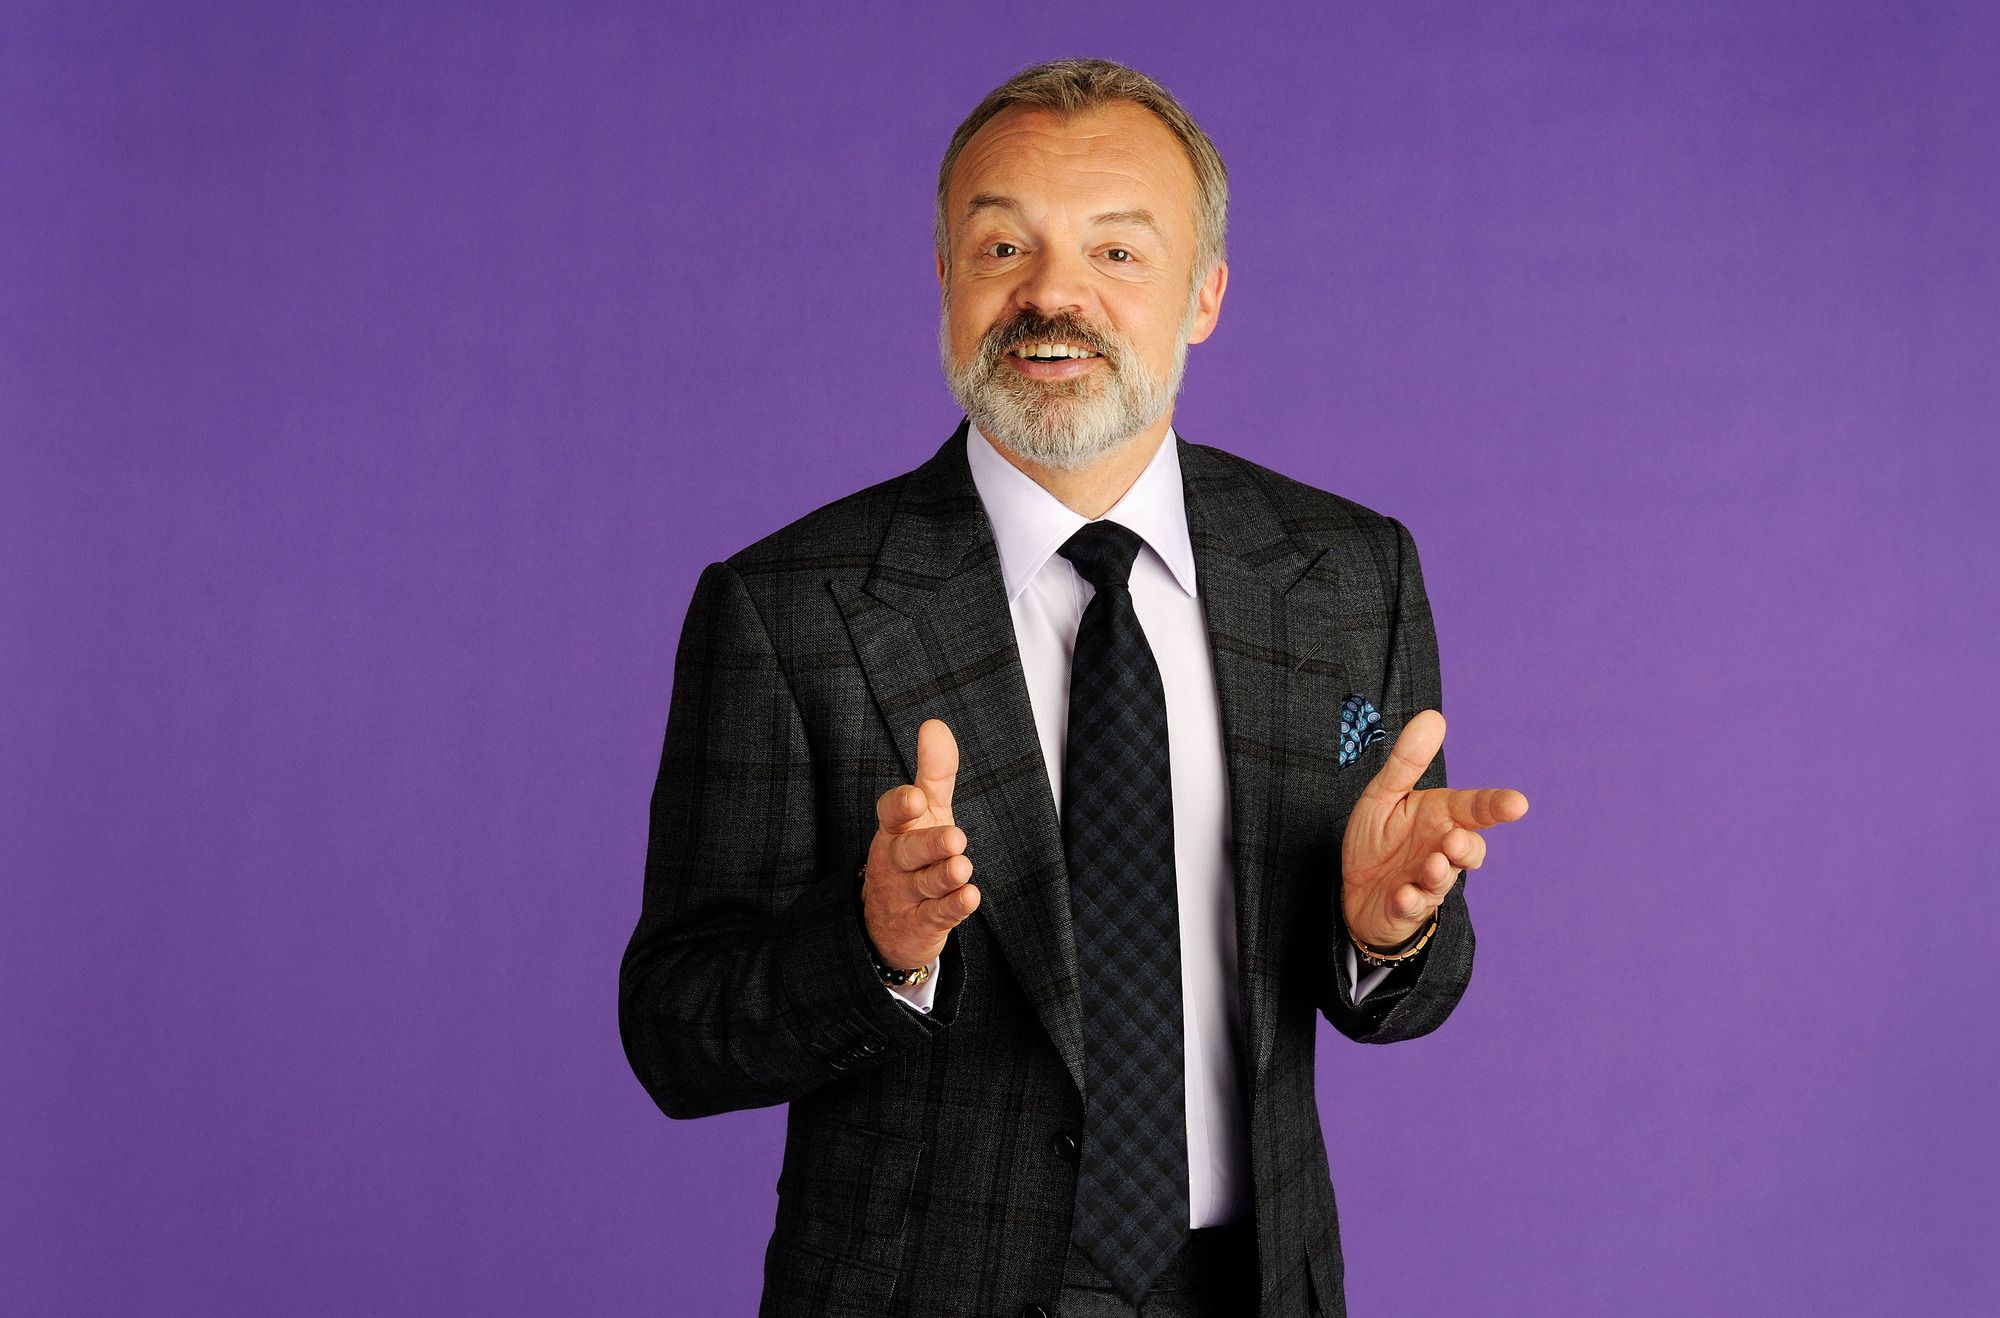 Graham Norton has been given a big new hosting gig